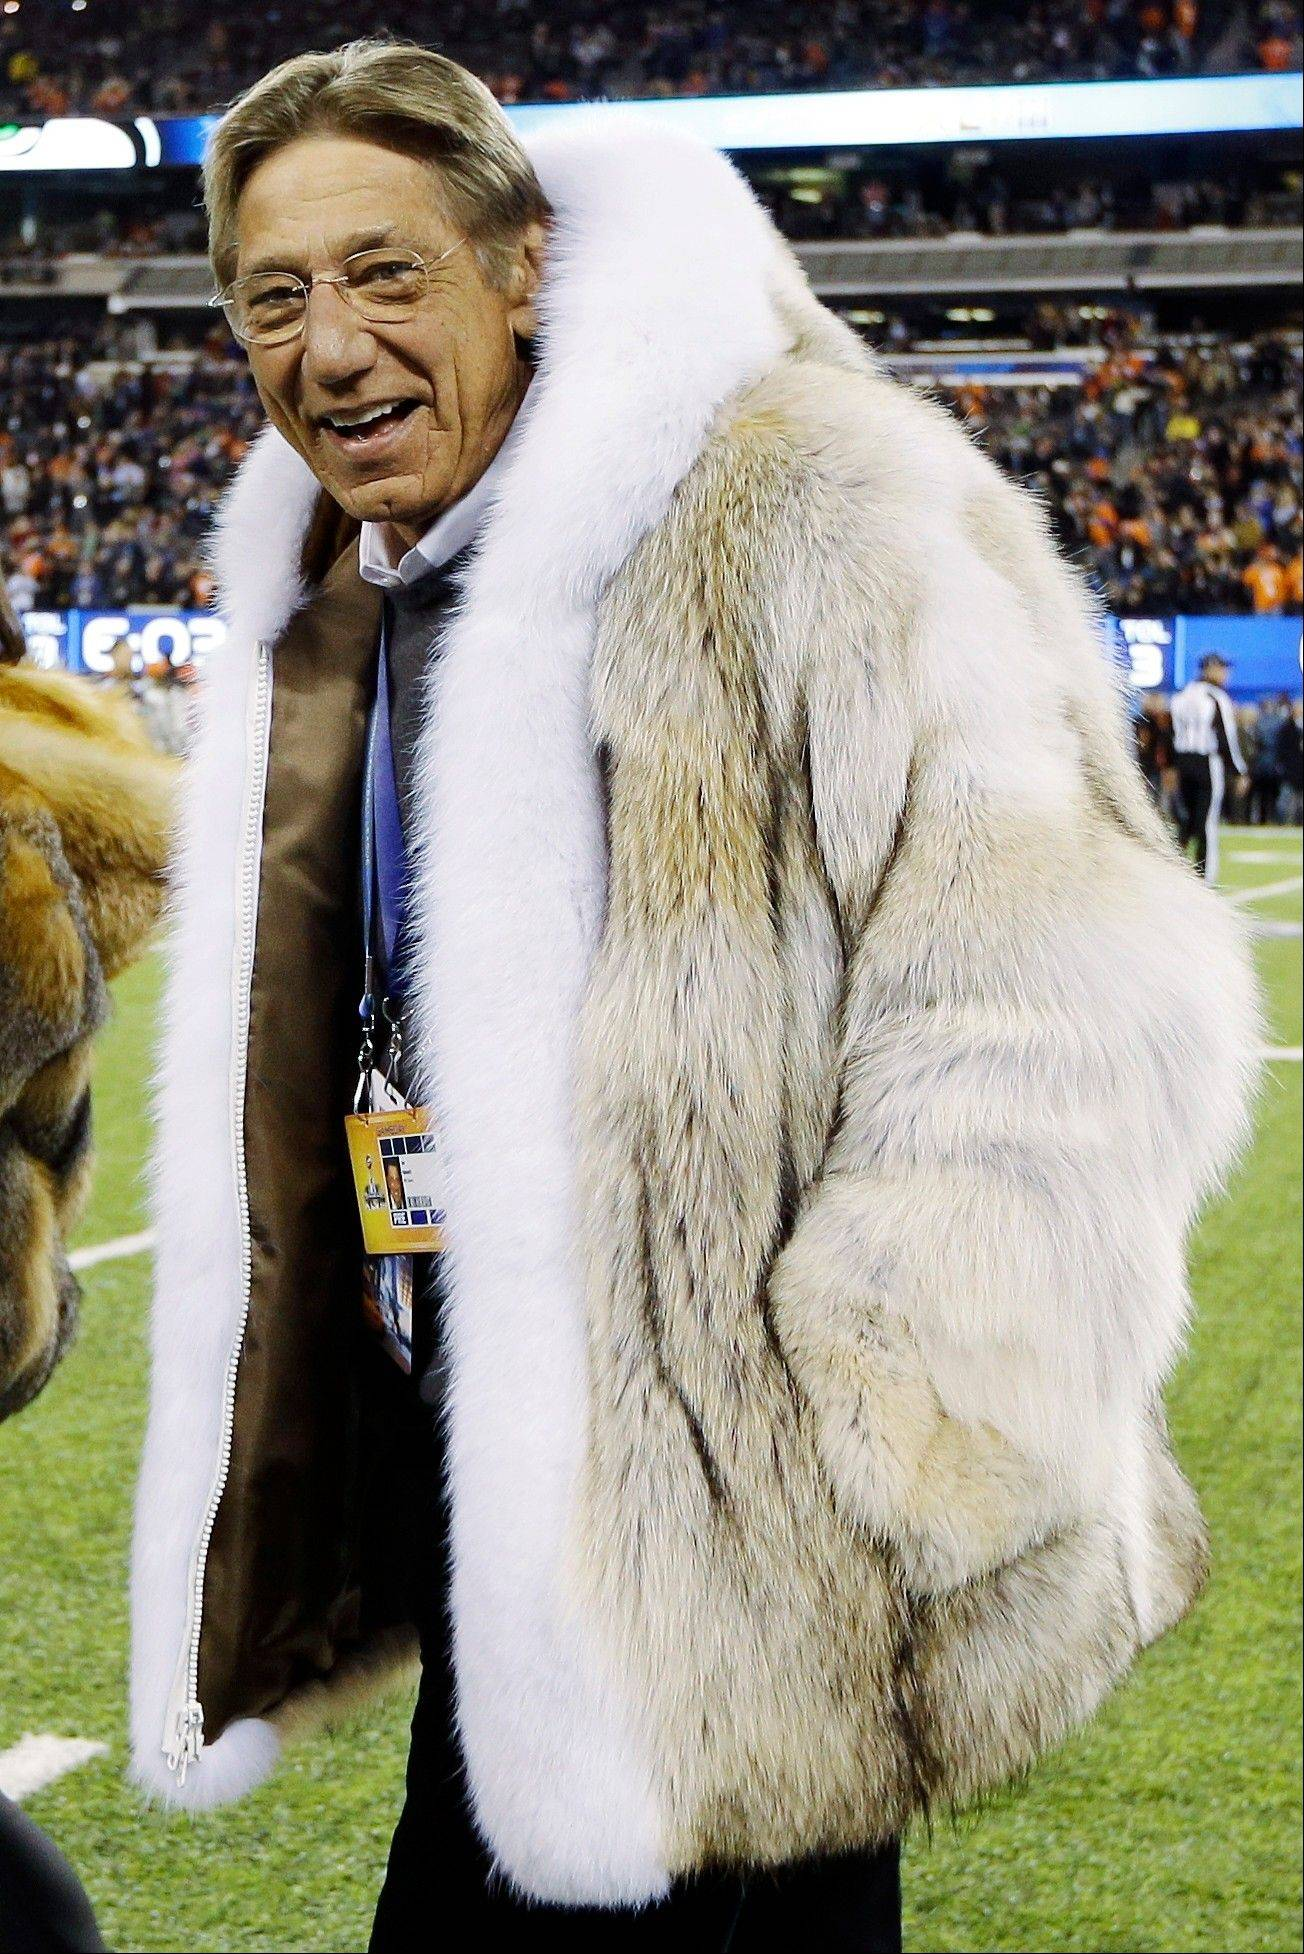 This year's Super Bowl ads seemed to be upstaged by Joe Namath, at least on social media. When the football hero appeared on the field for the coin toss wearing a massive fur coat, Twitter and other sites buzzed with jokes. The reaction to most ads was much more muted.